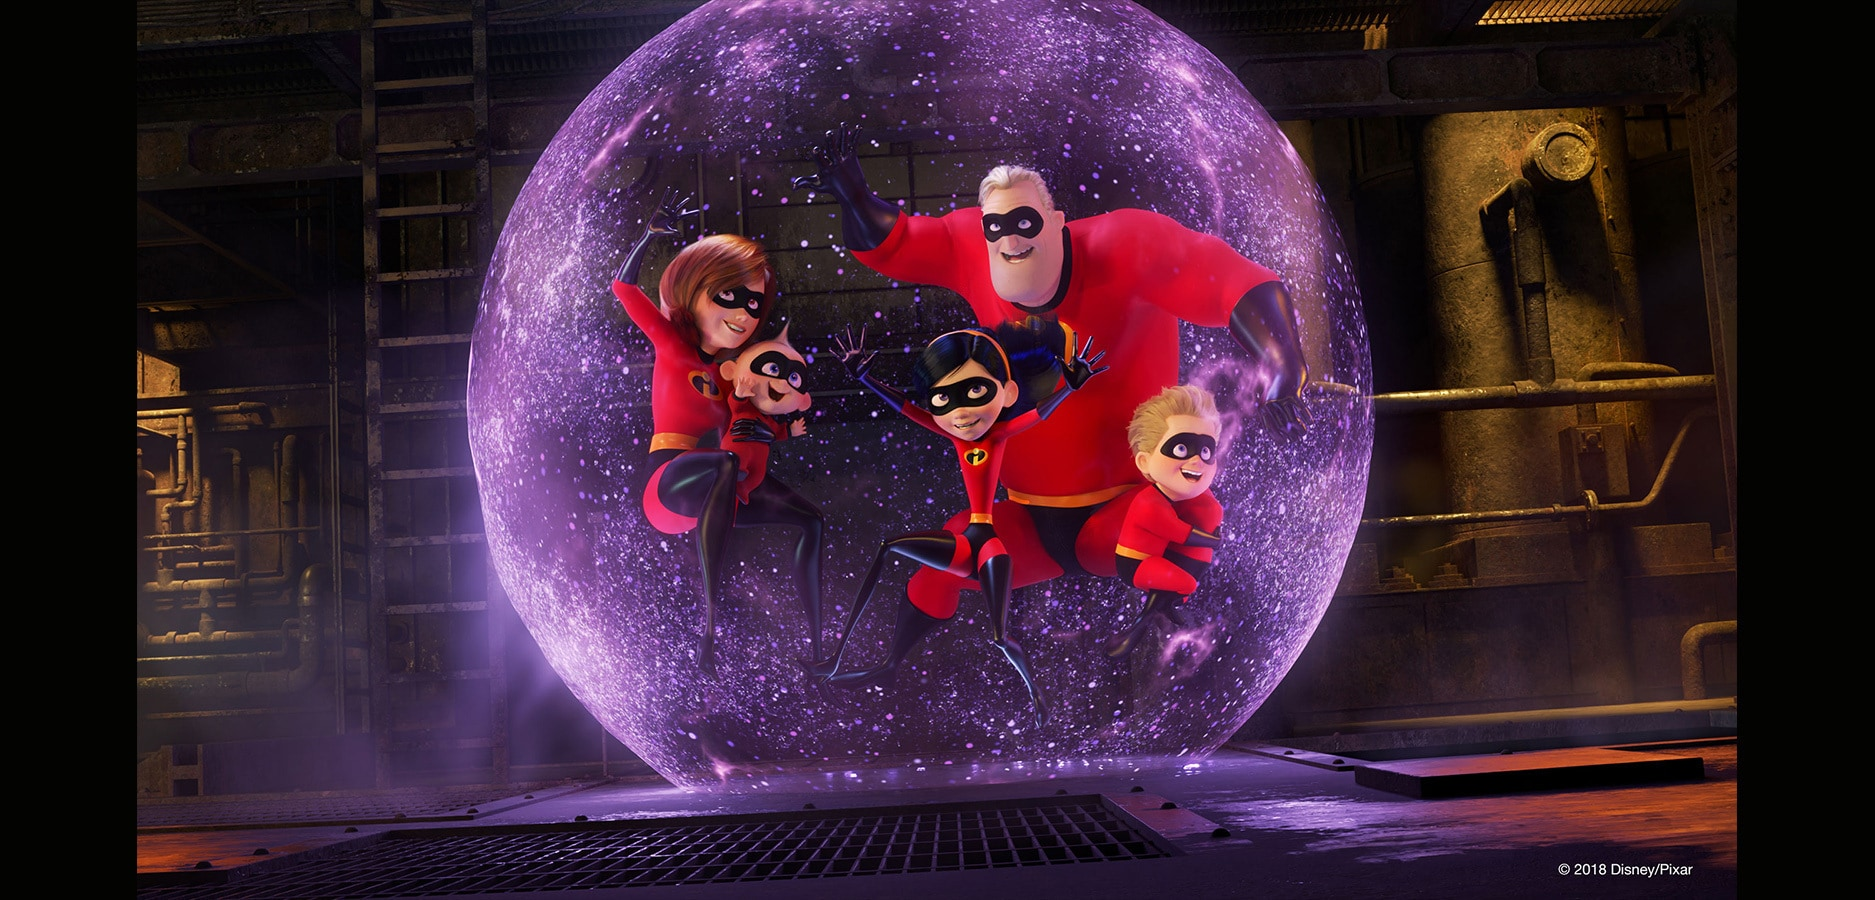 The Incredibles family unite